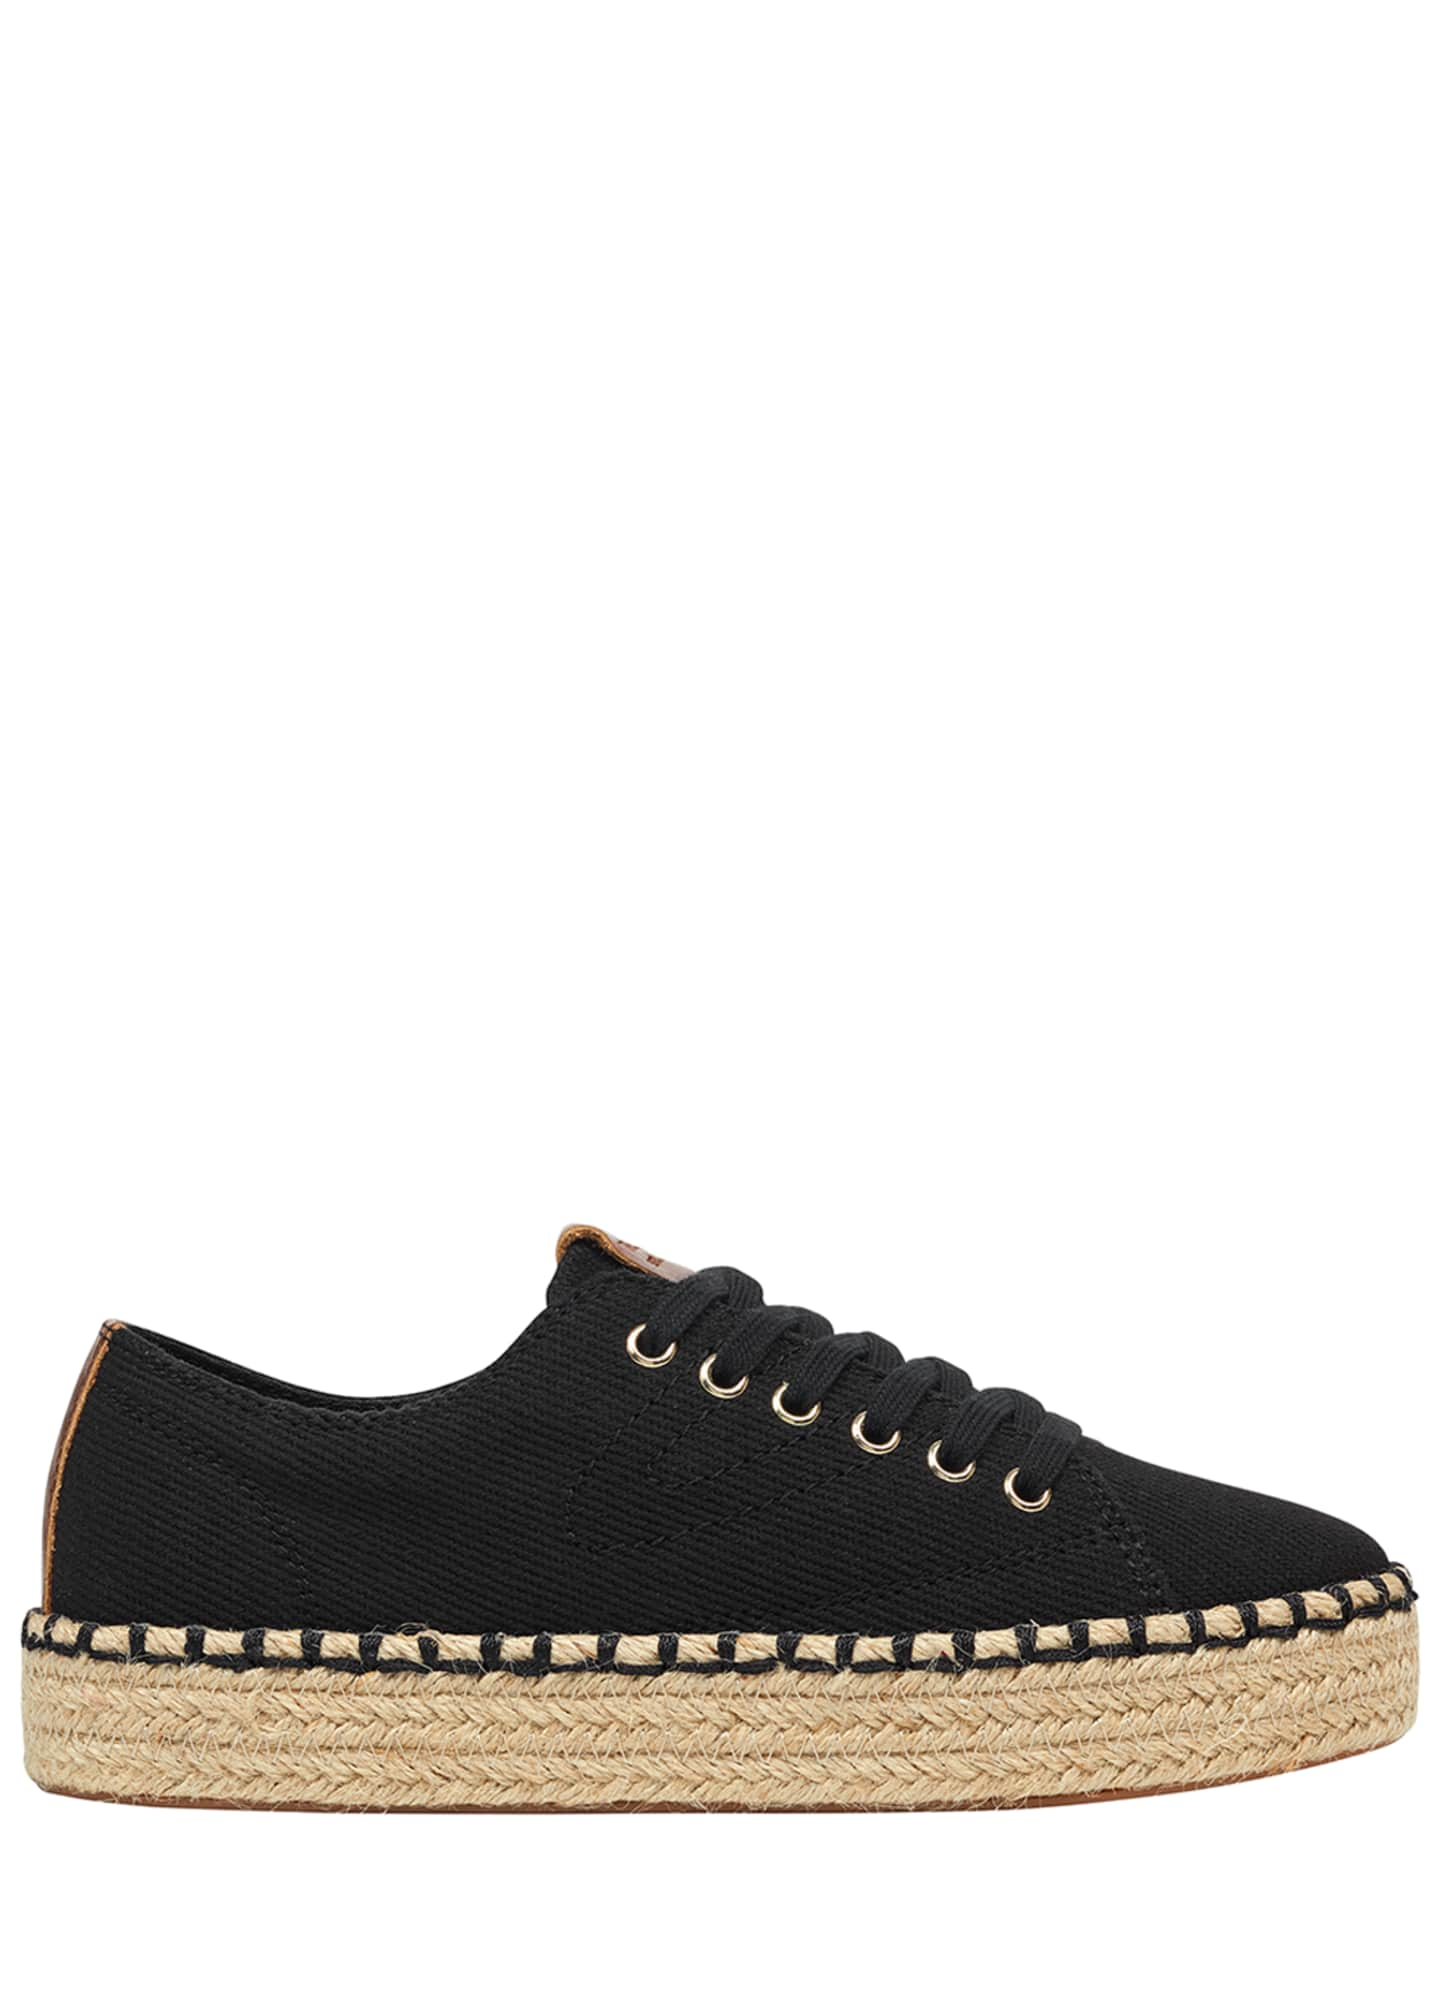 Image 2 of 5: Eve Canvas Espadrille Platform Sneakers